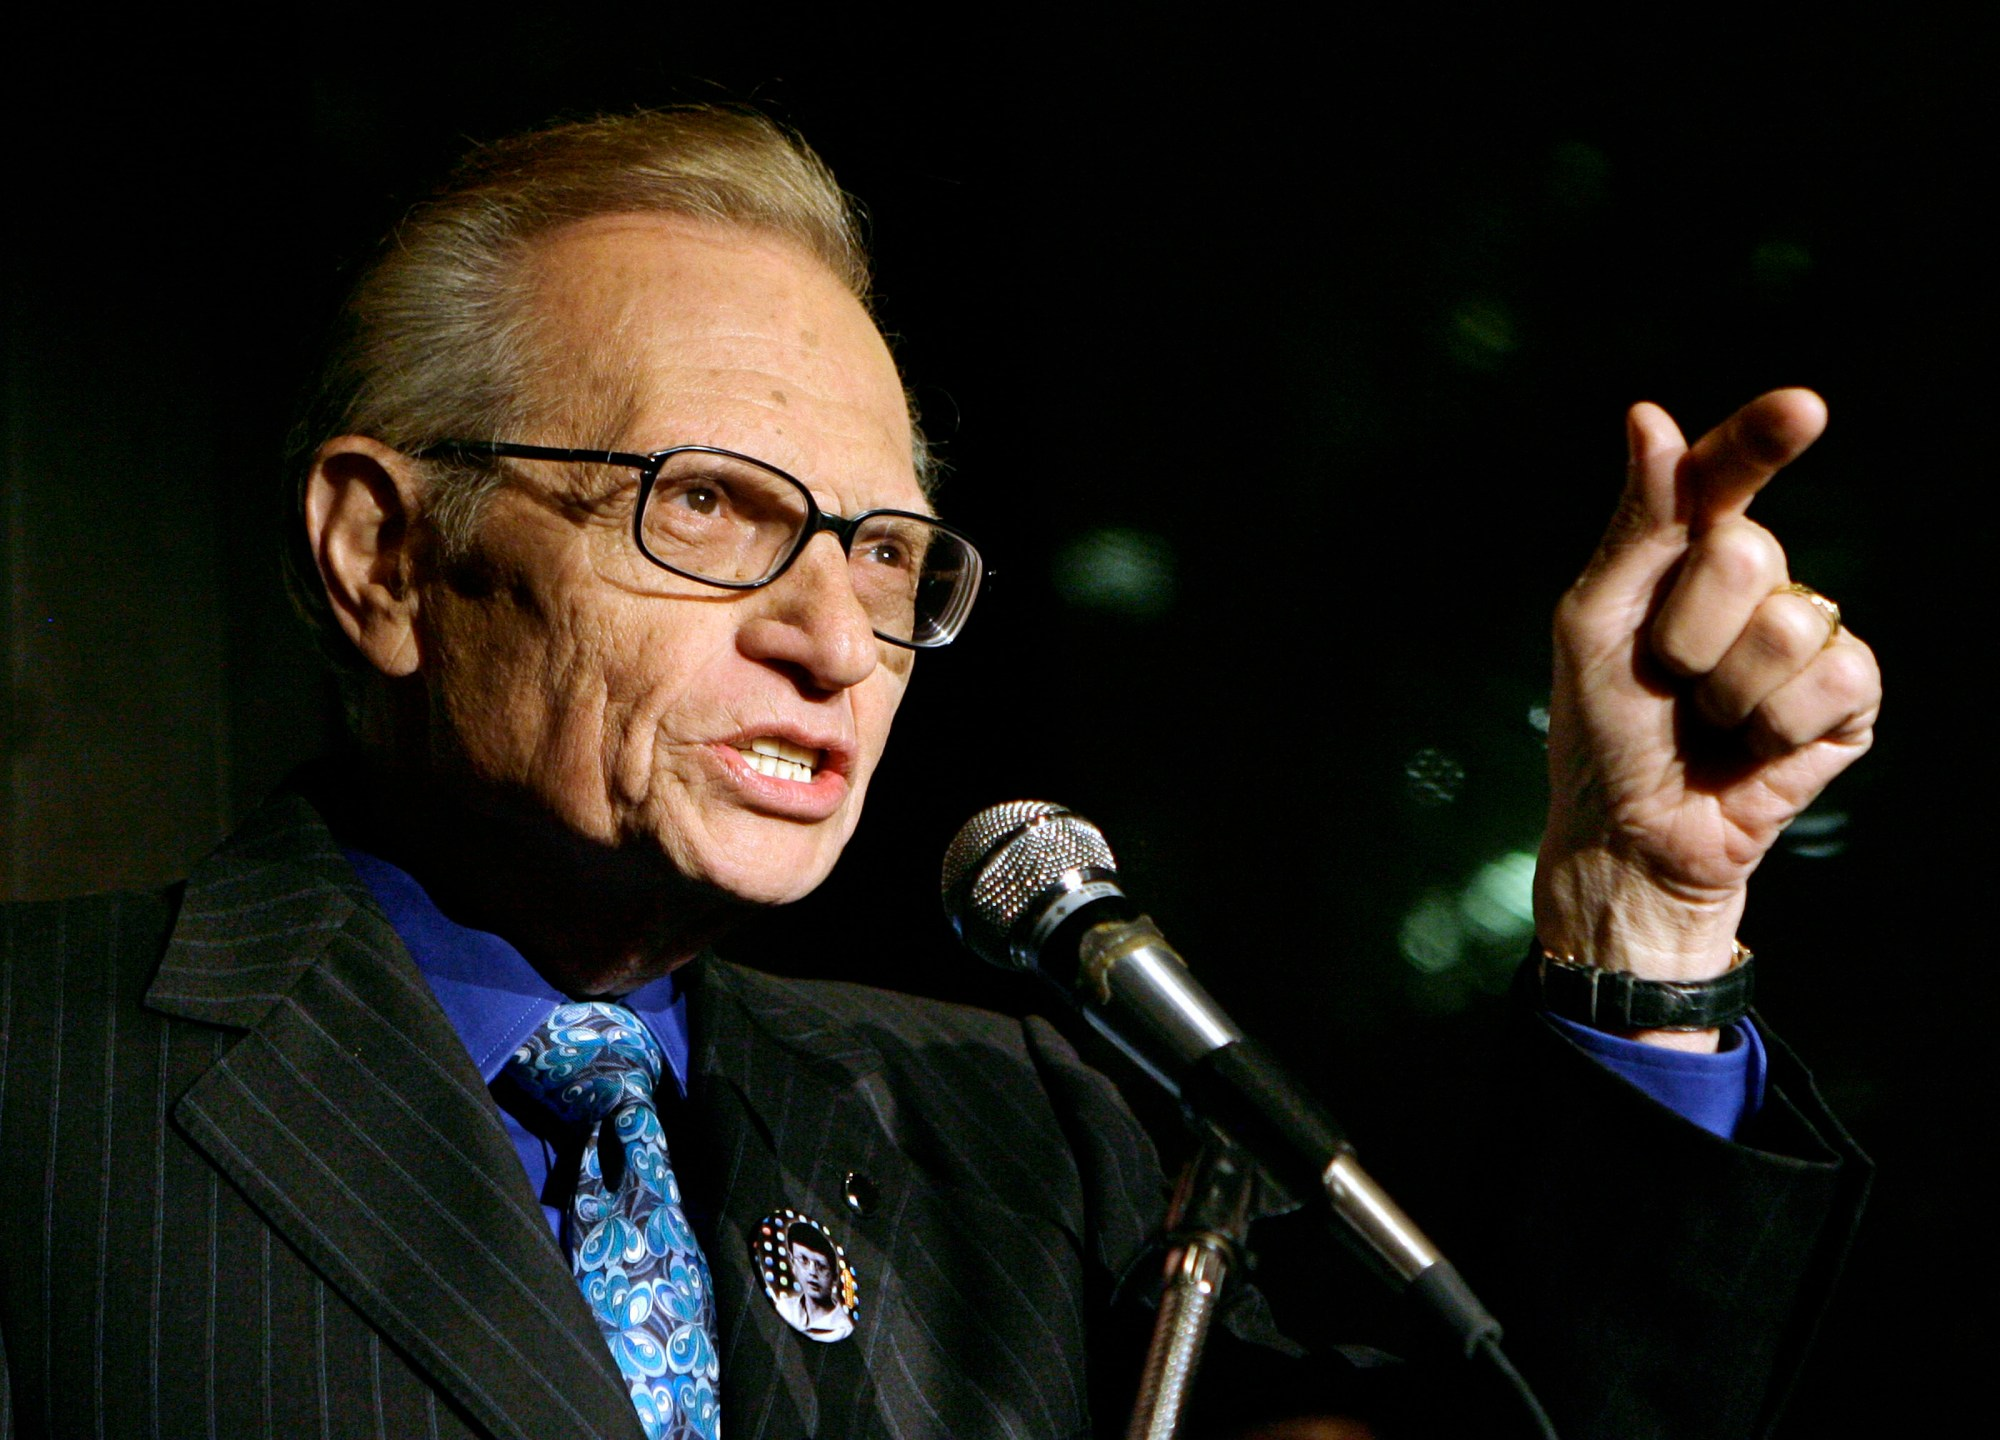 In this April 18, 2007 file photo, Larry King speaks to guests at a party held by CNN, celebrating King's fifty years of broadcasting in New York. (AP Photo/Stuart Ramson, File)